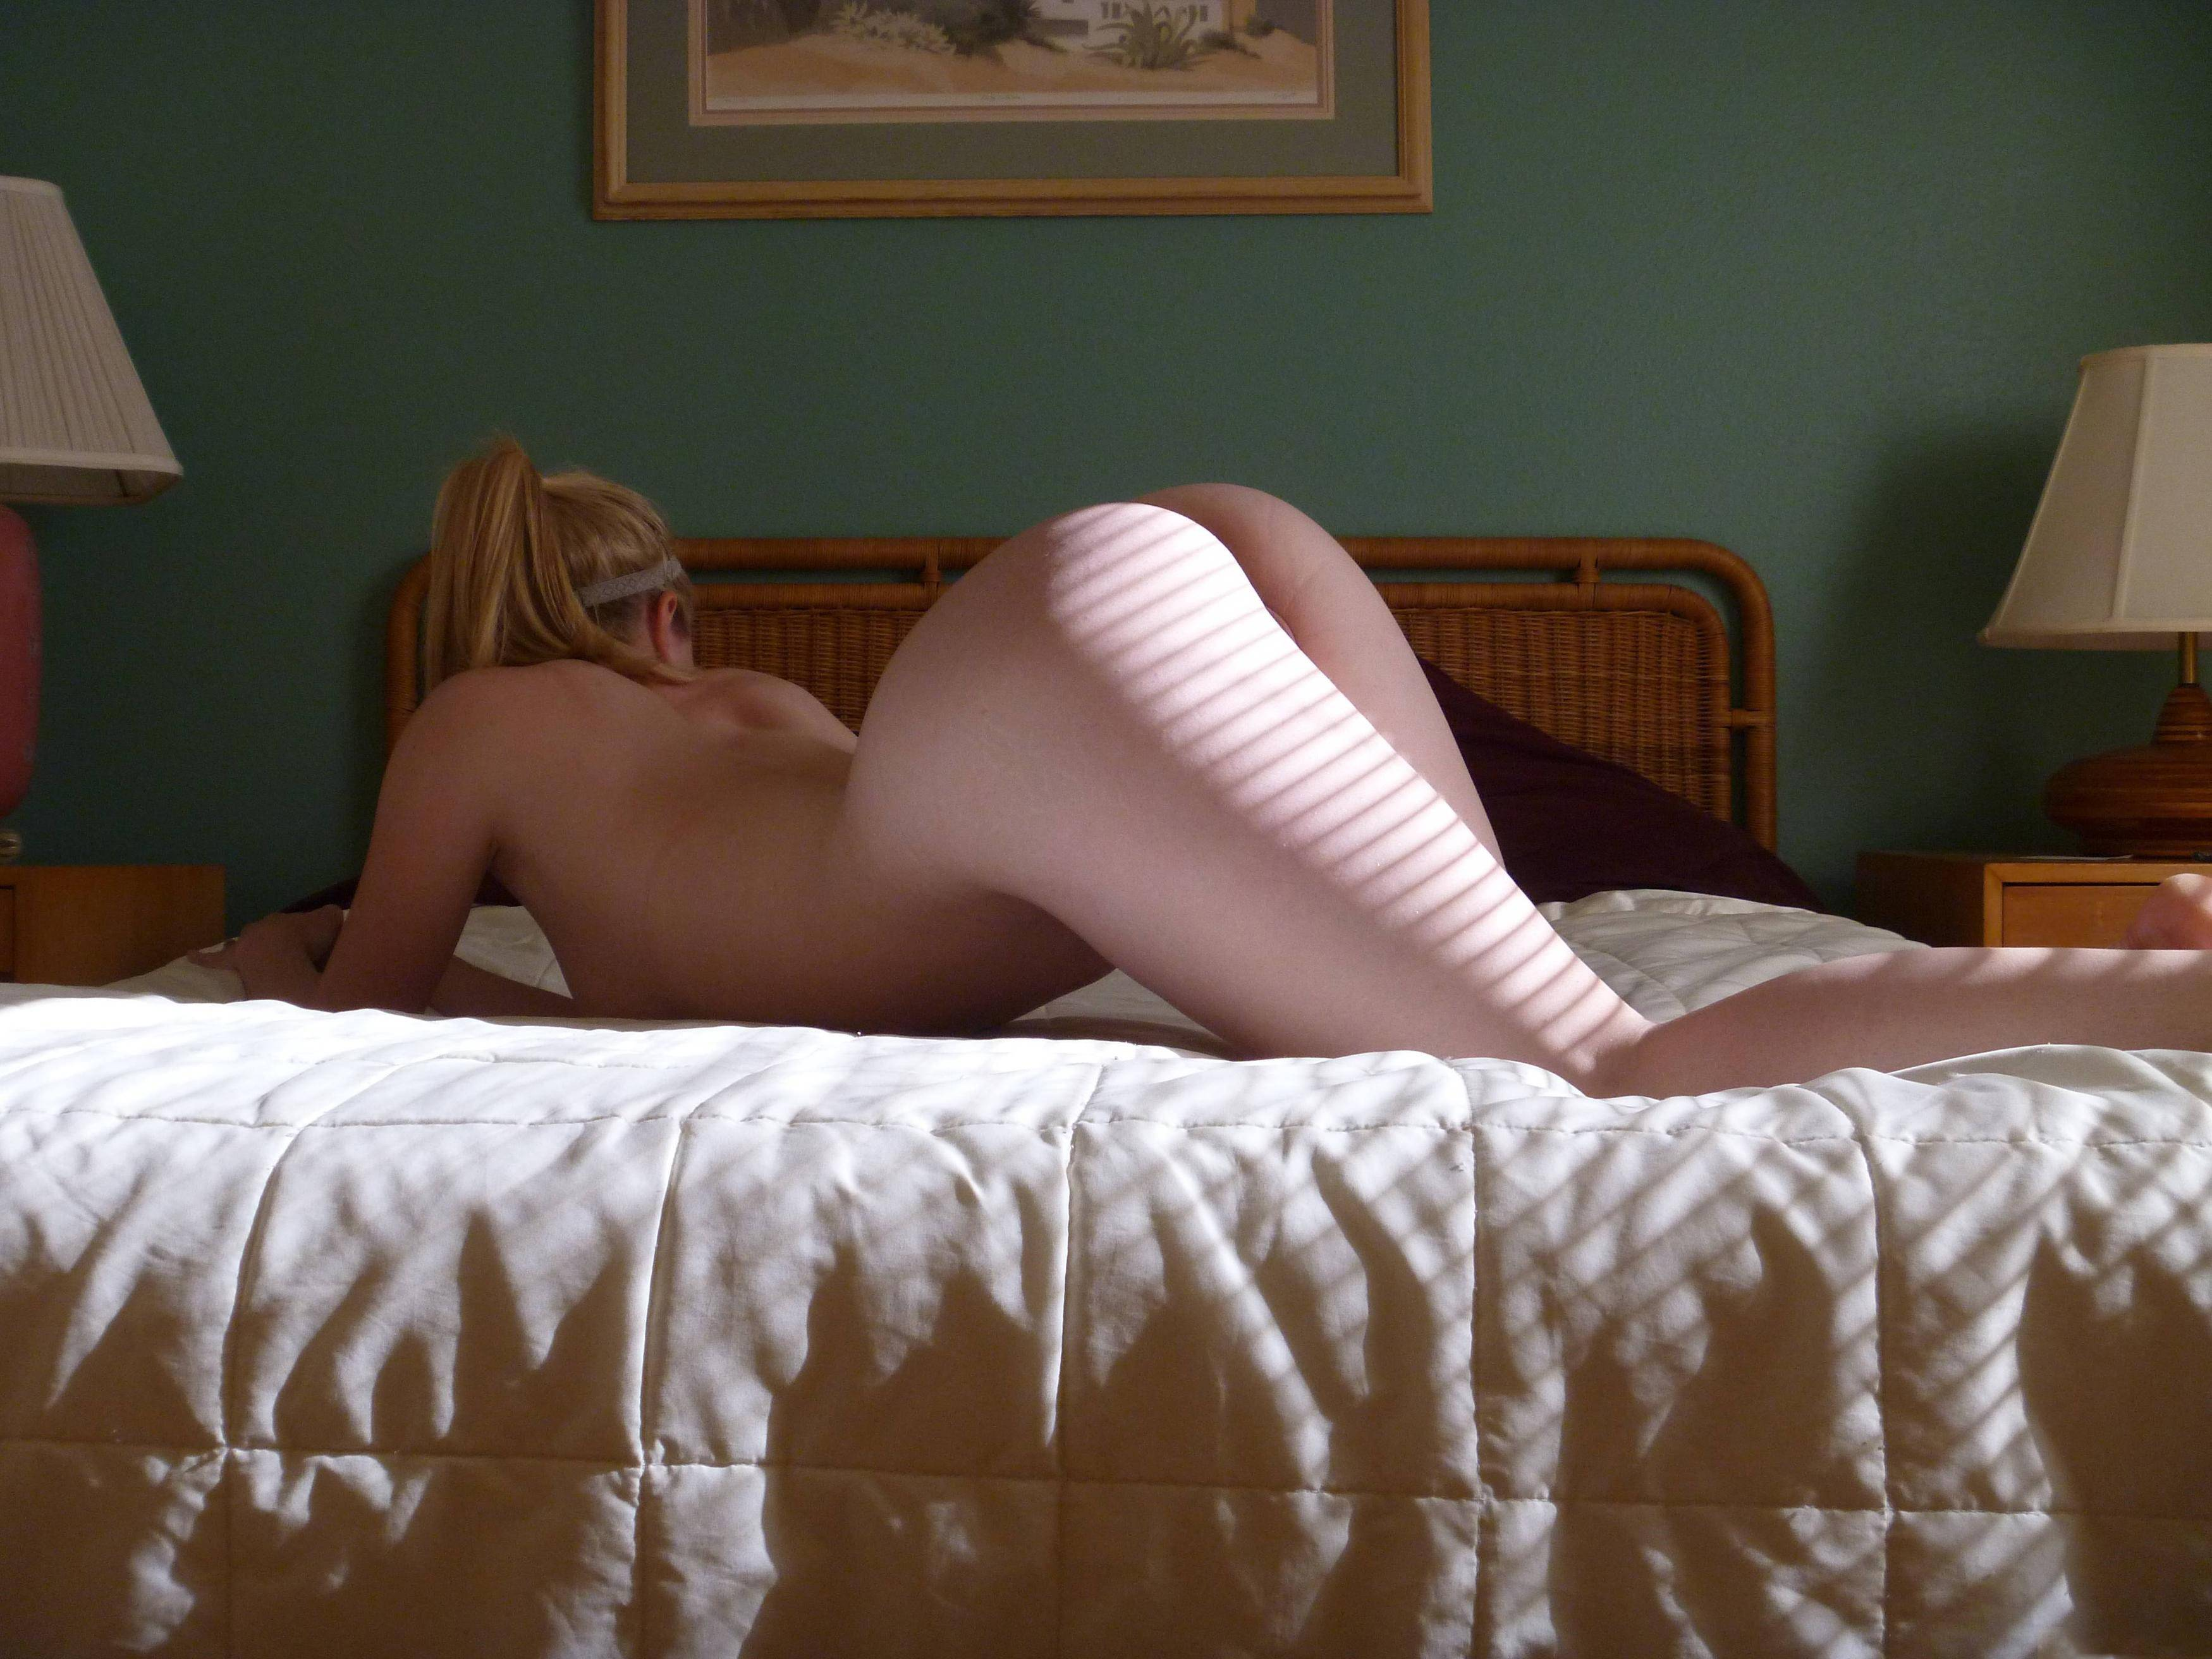 ex-girlfriend-nude-amateurs-girls-private-photo-mix-vol4-76